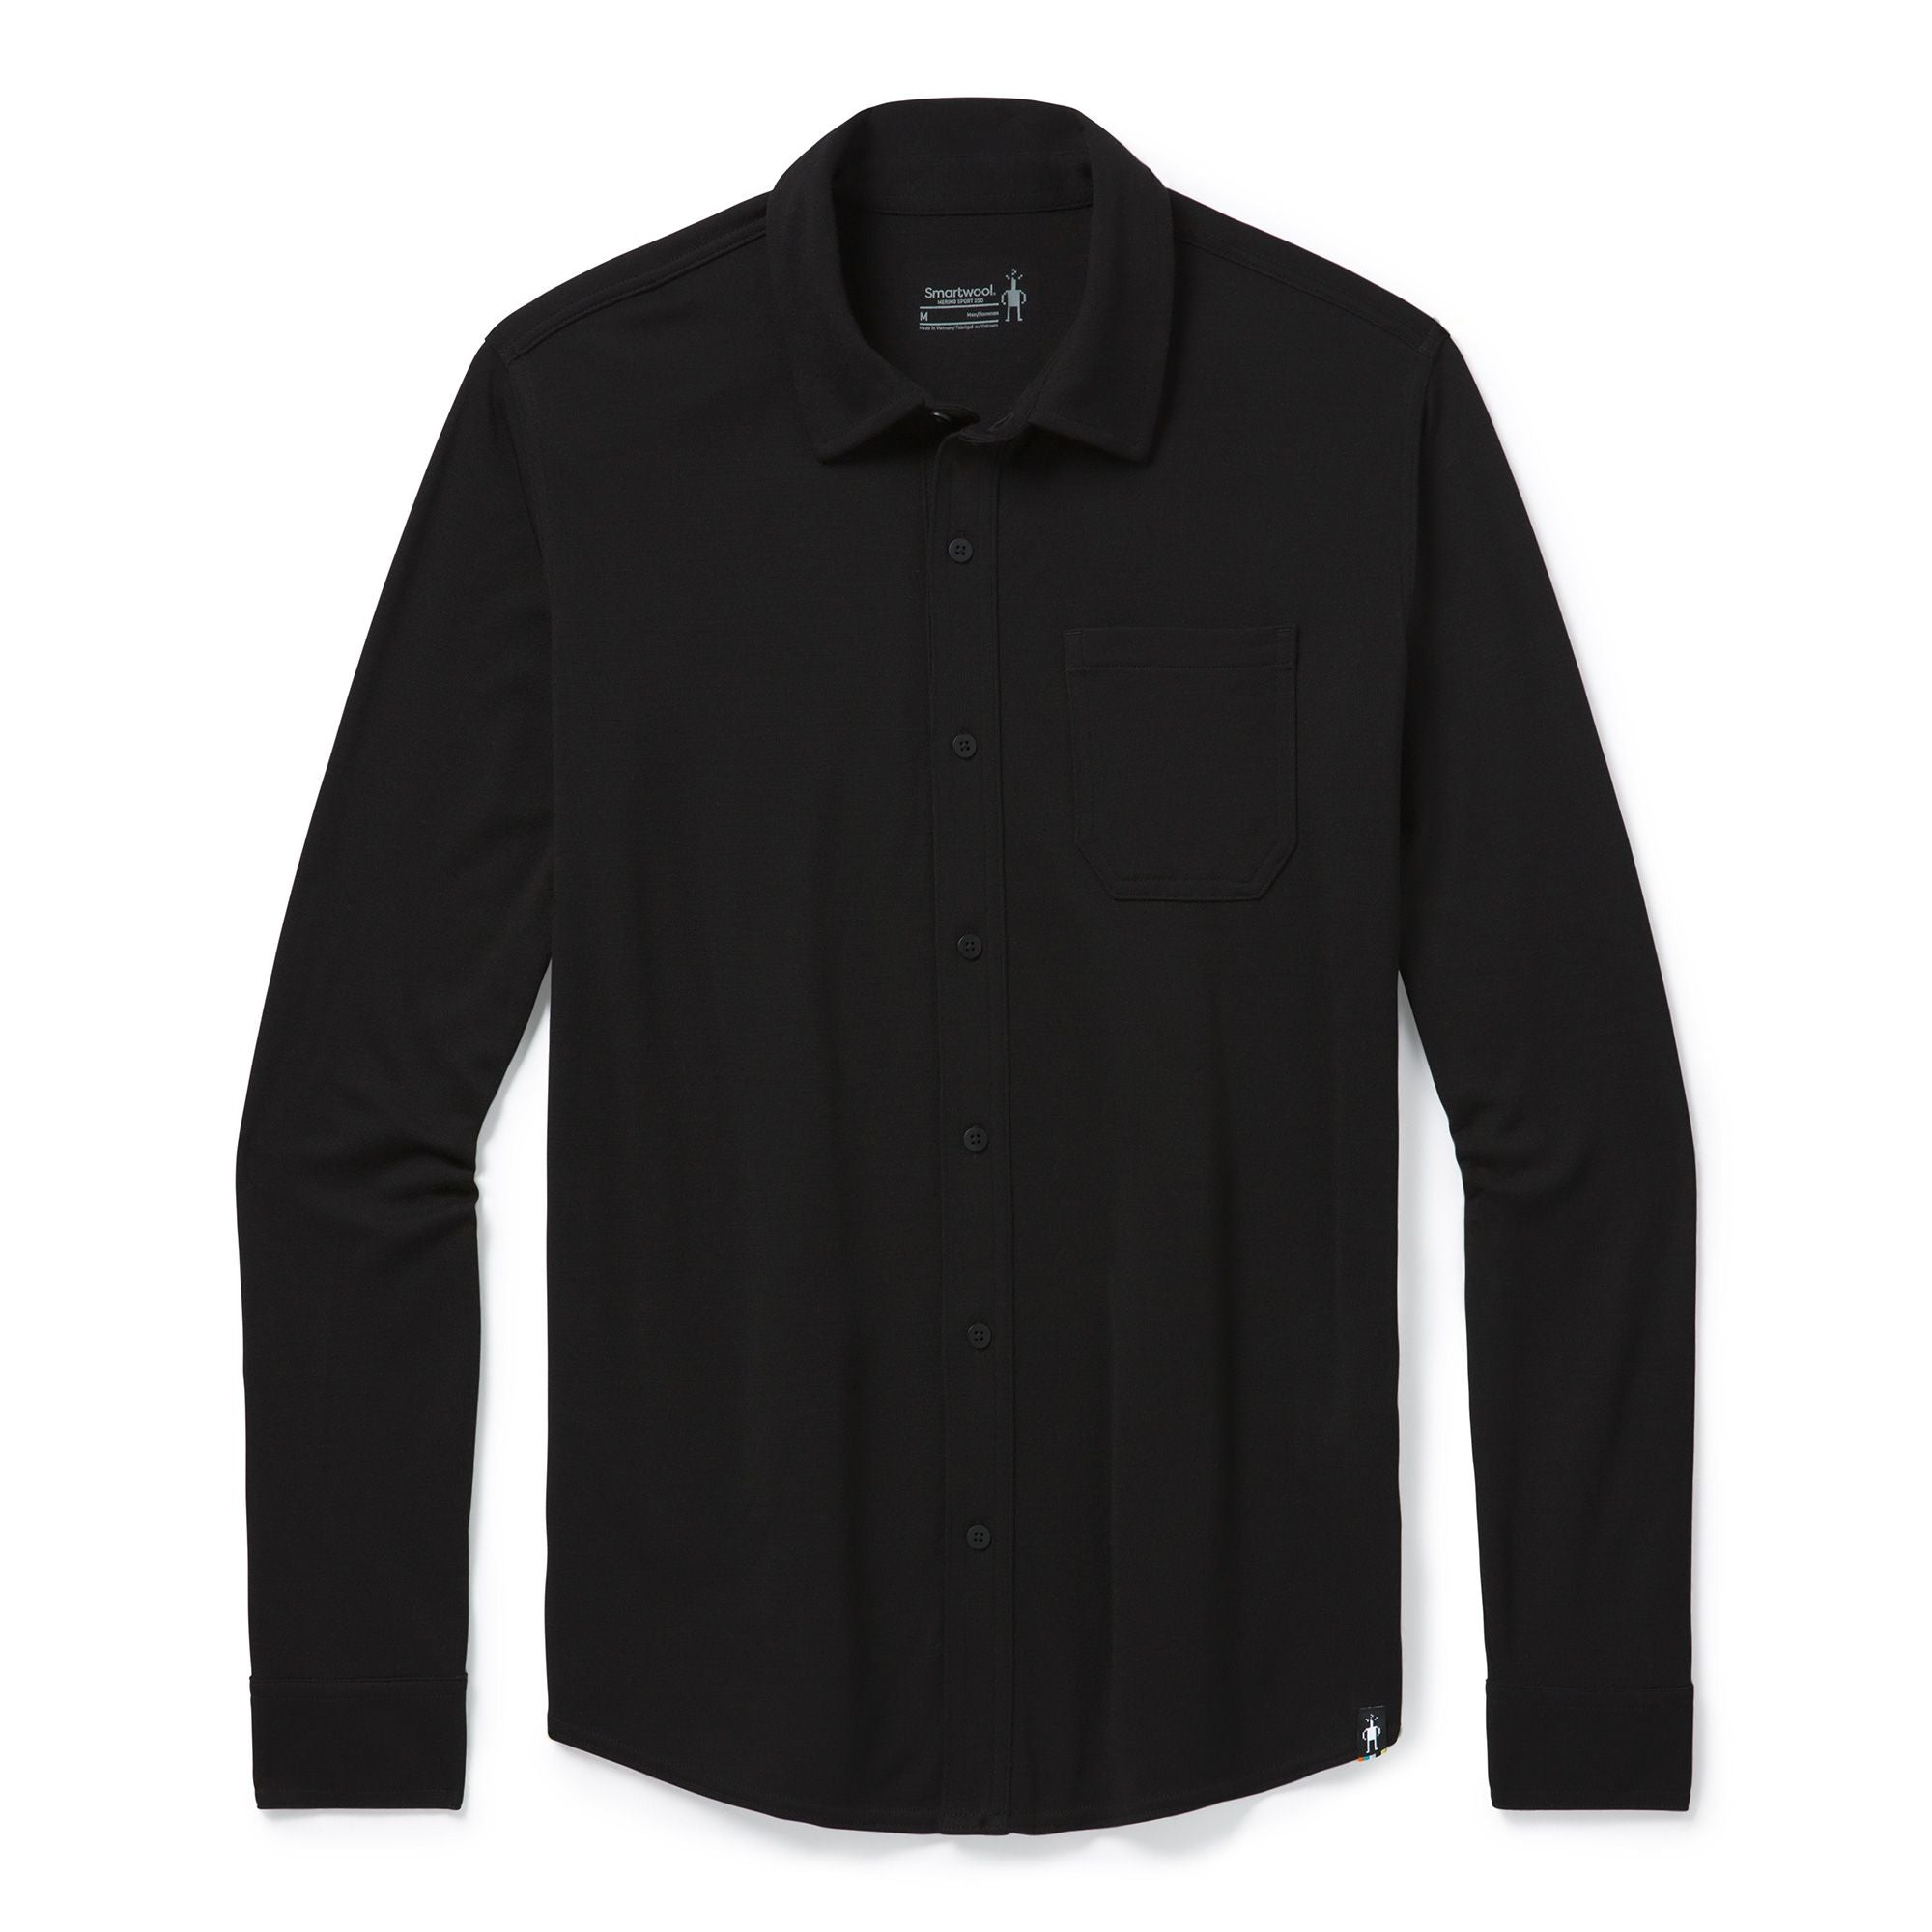 Men's Merino Sport 250 Long Sleeve Button Up